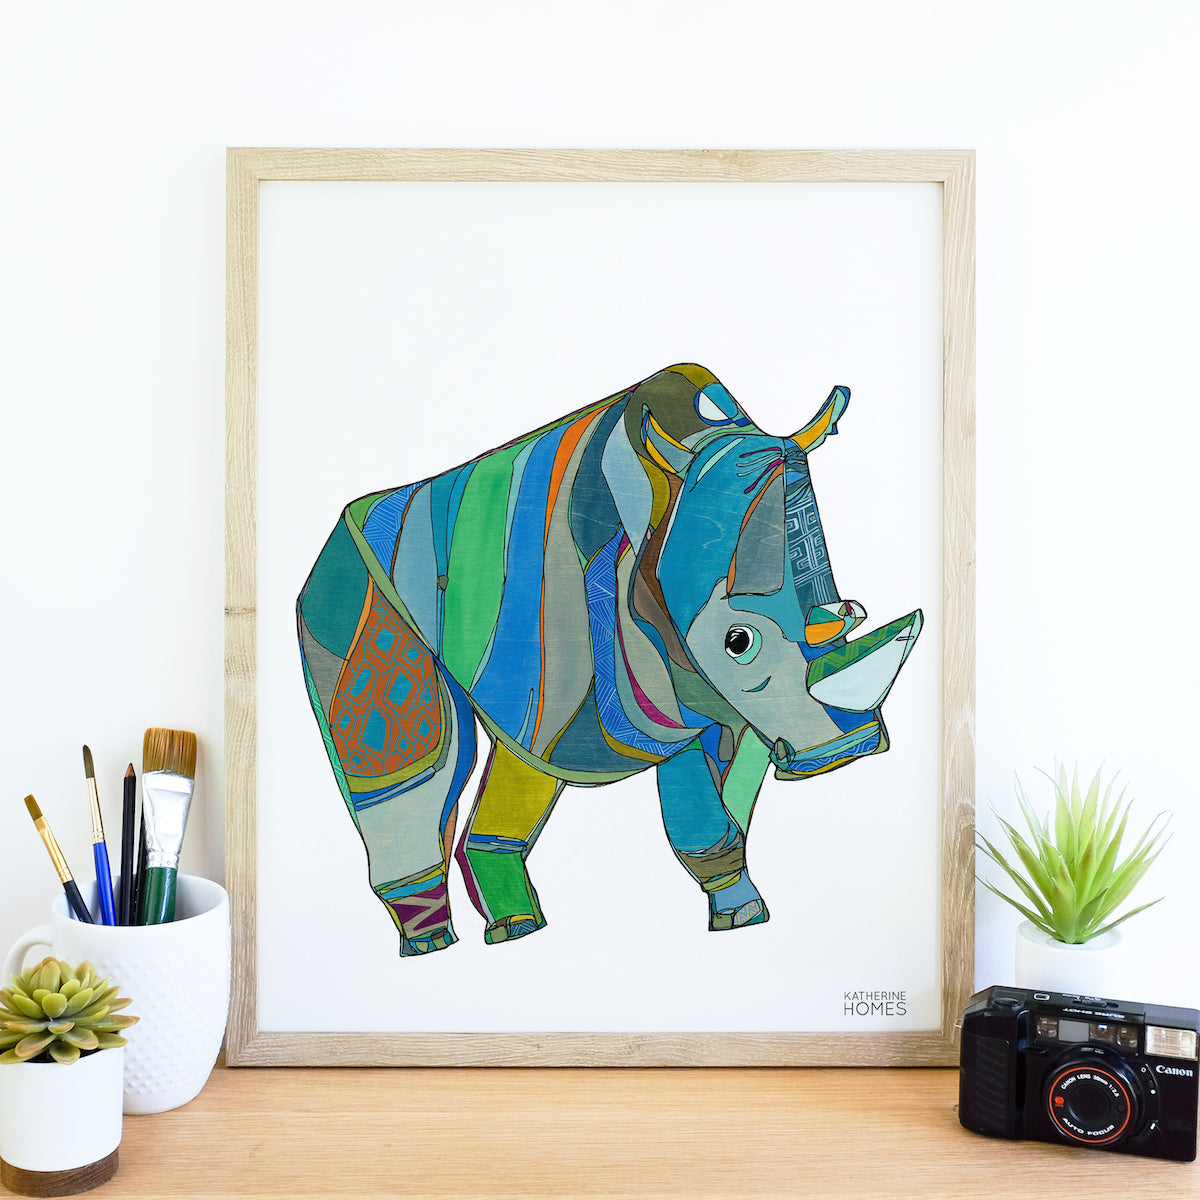 Katherine Homes Northern White Rhino Print